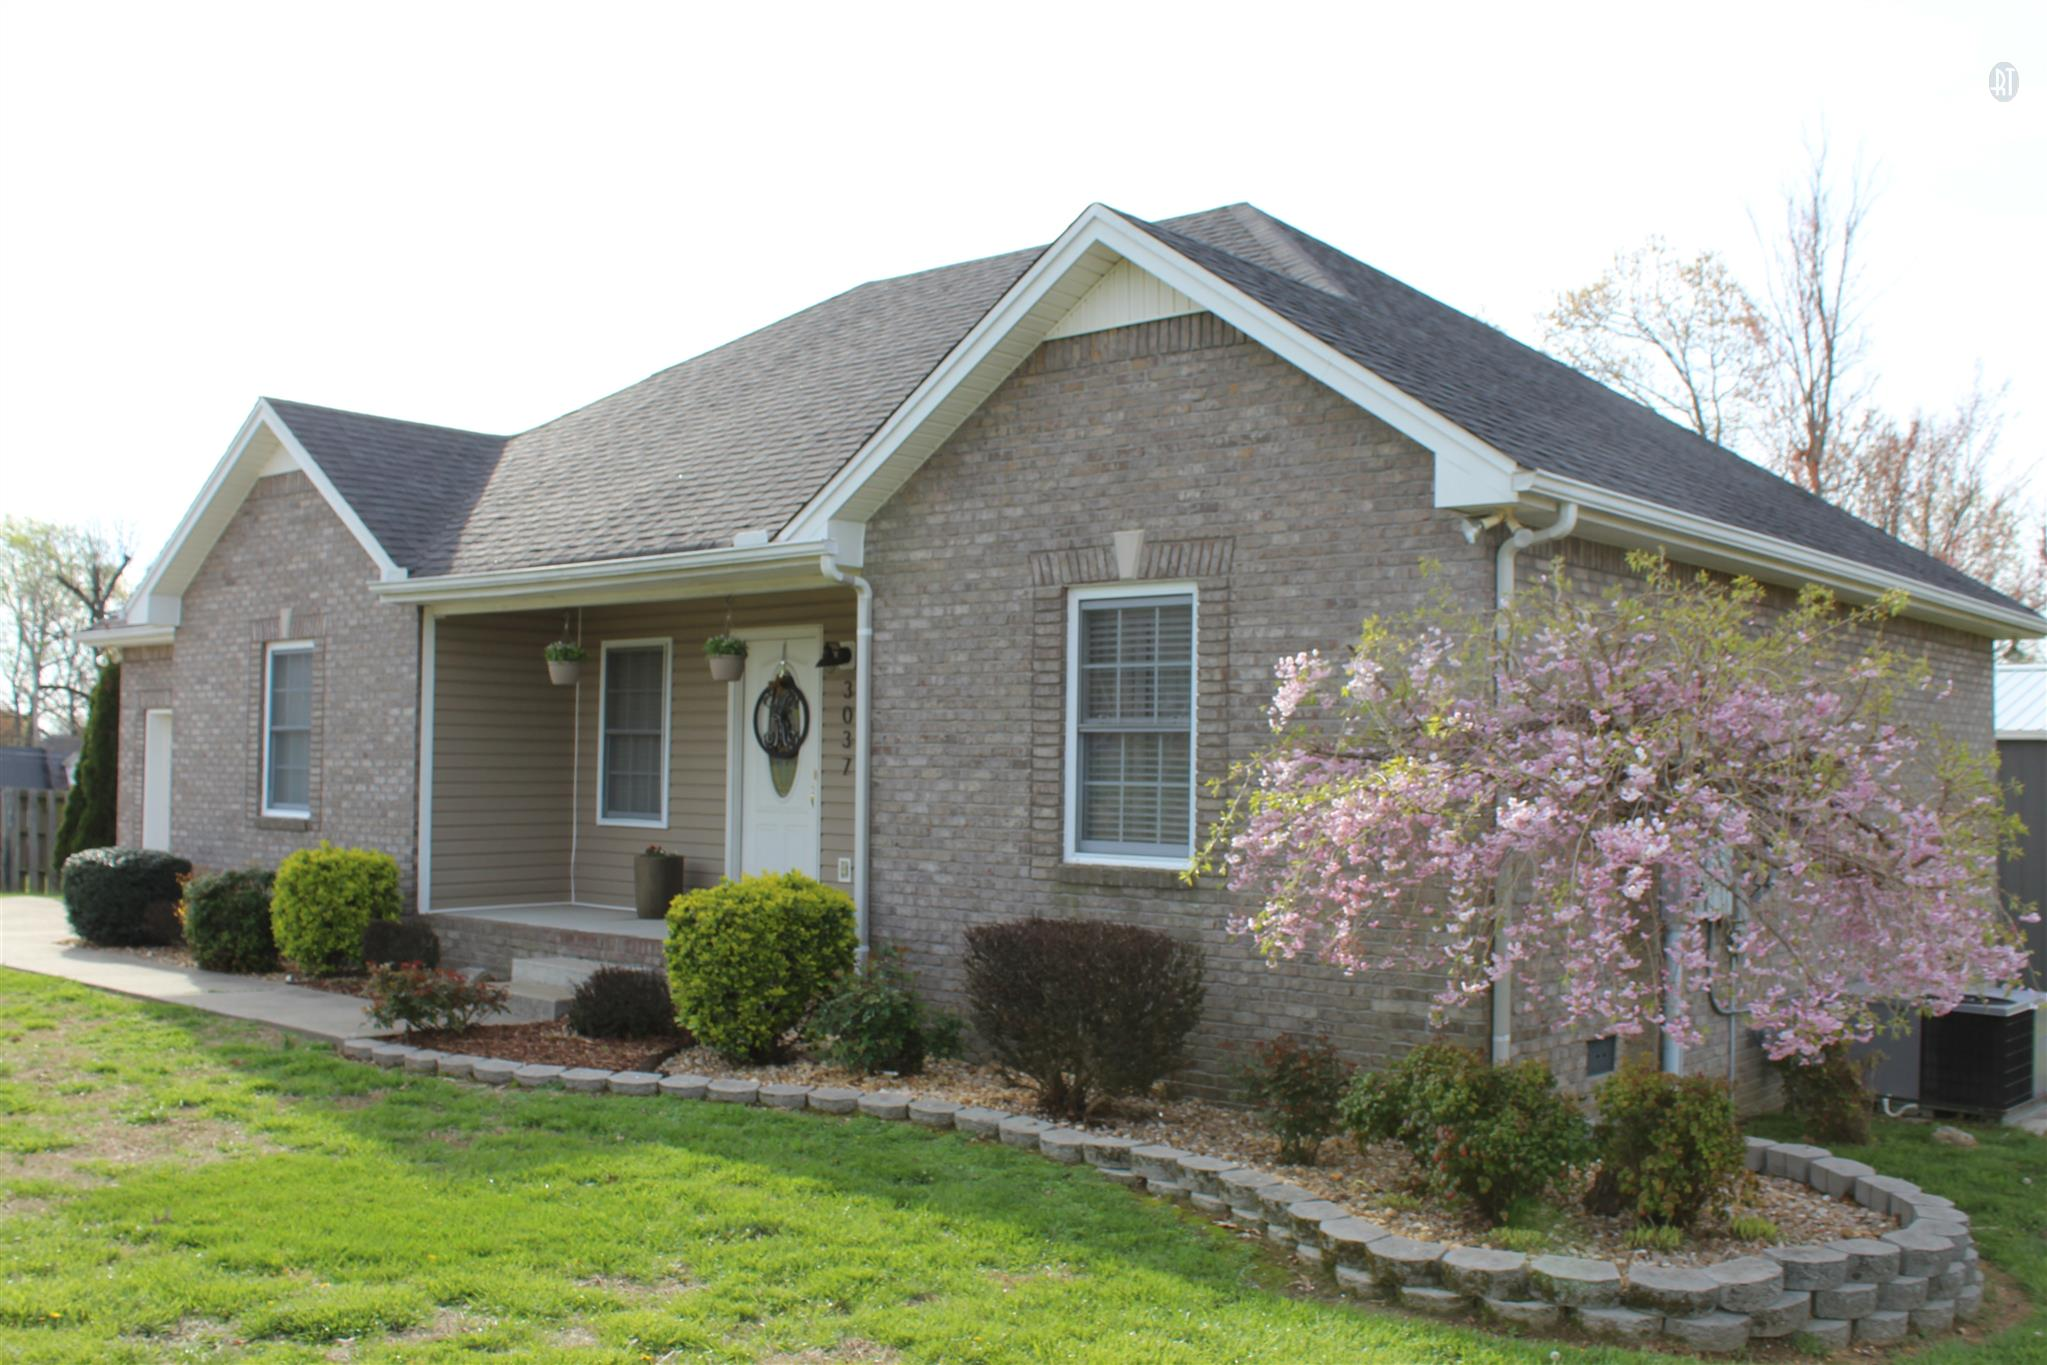 Homes For Sale in Steeple Chase Greenbrier TN